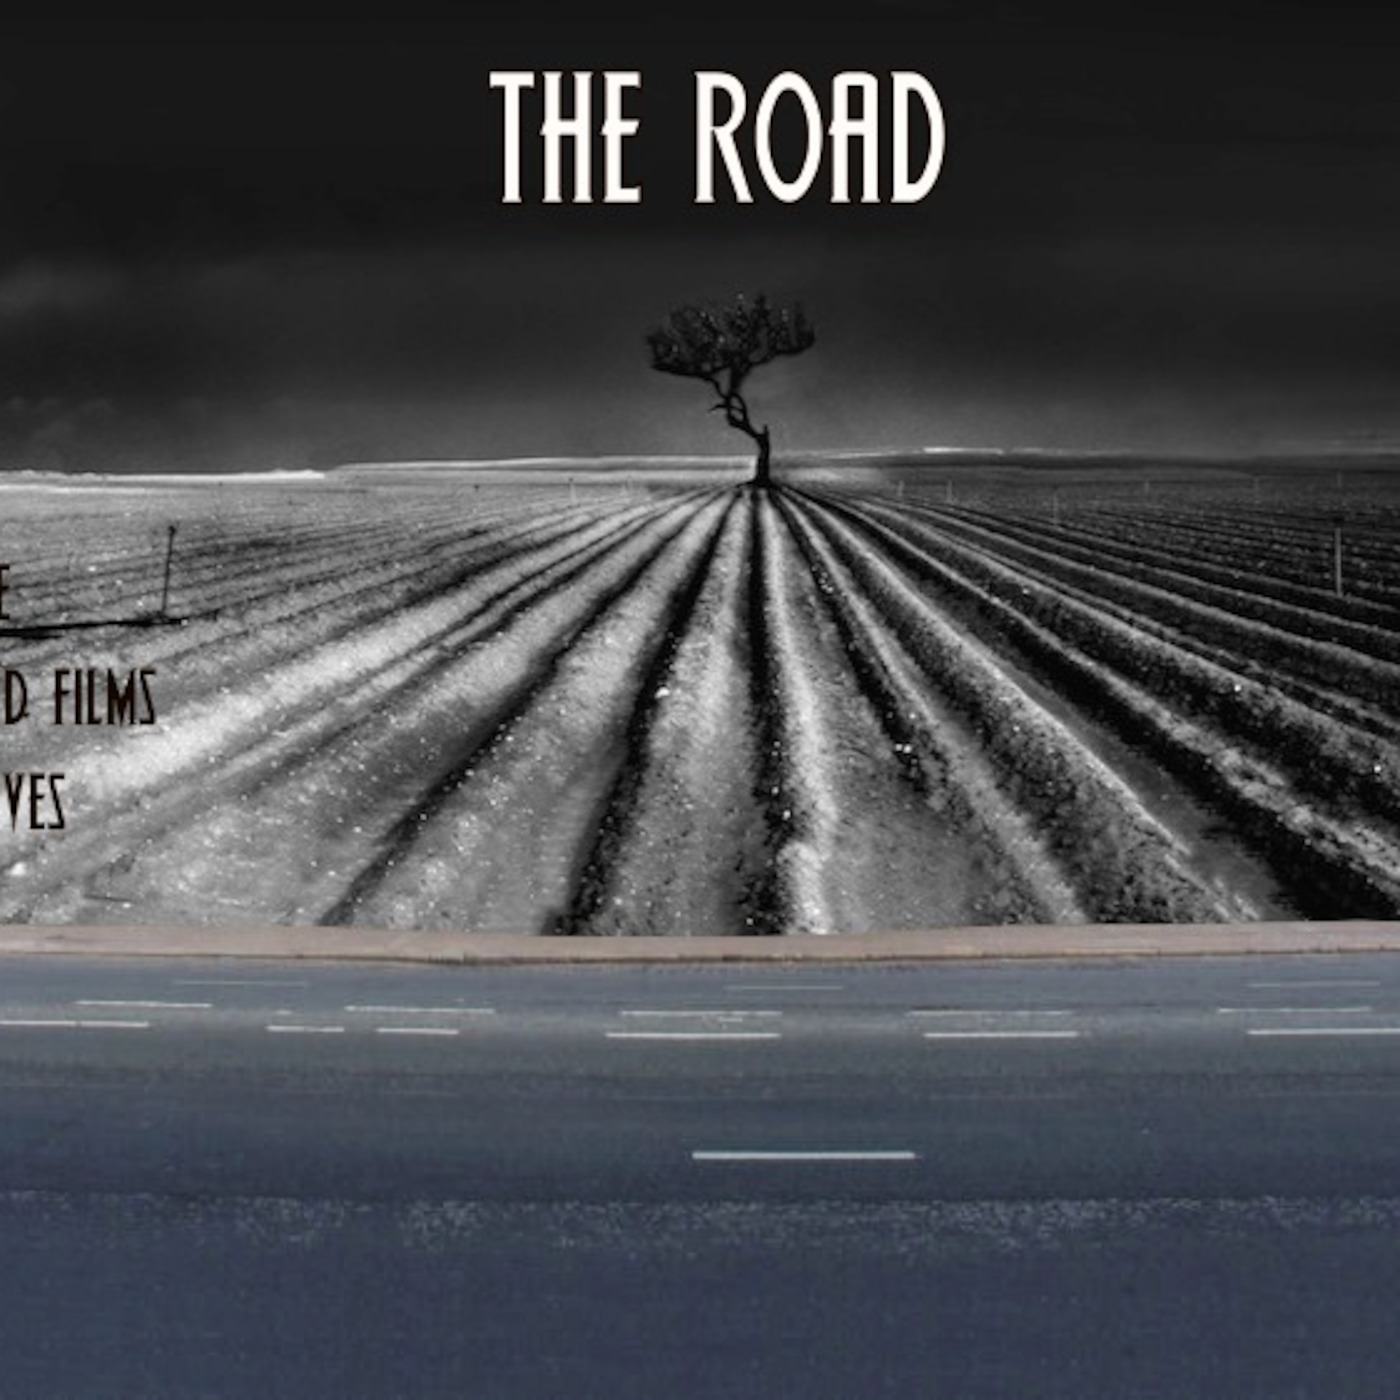 Episode 2 - The Road